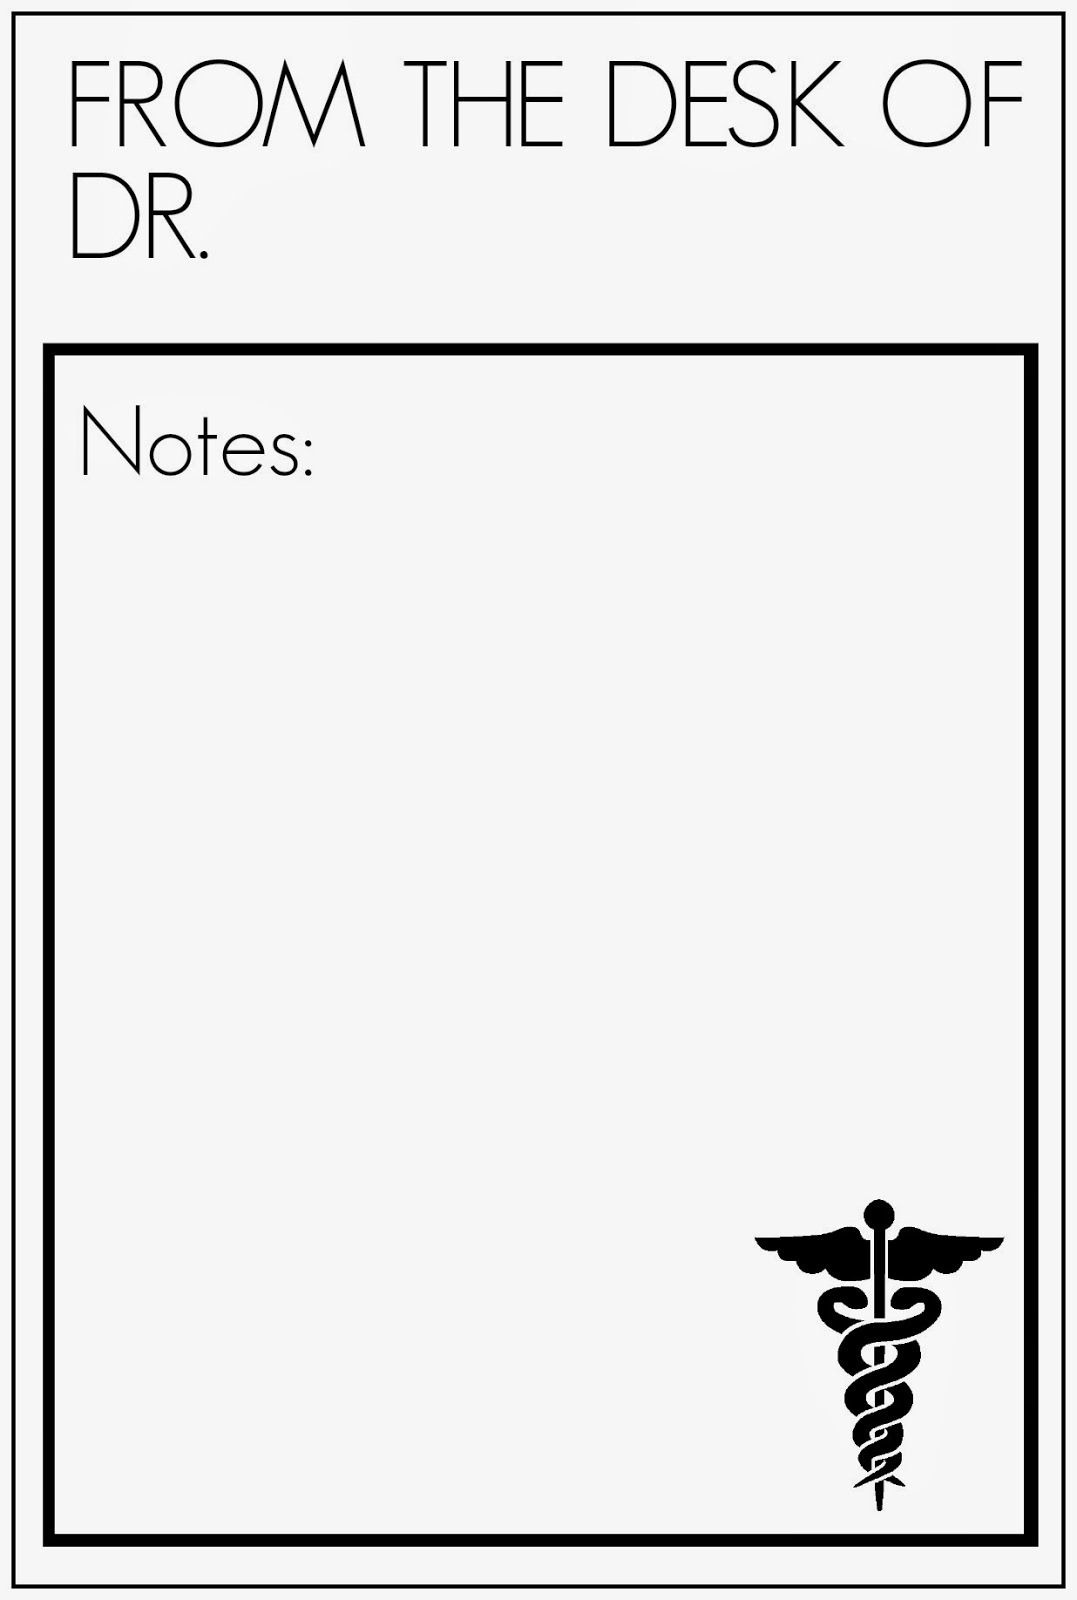 Notes For Free Fake Doctors Note Template Doctor Notes For Free